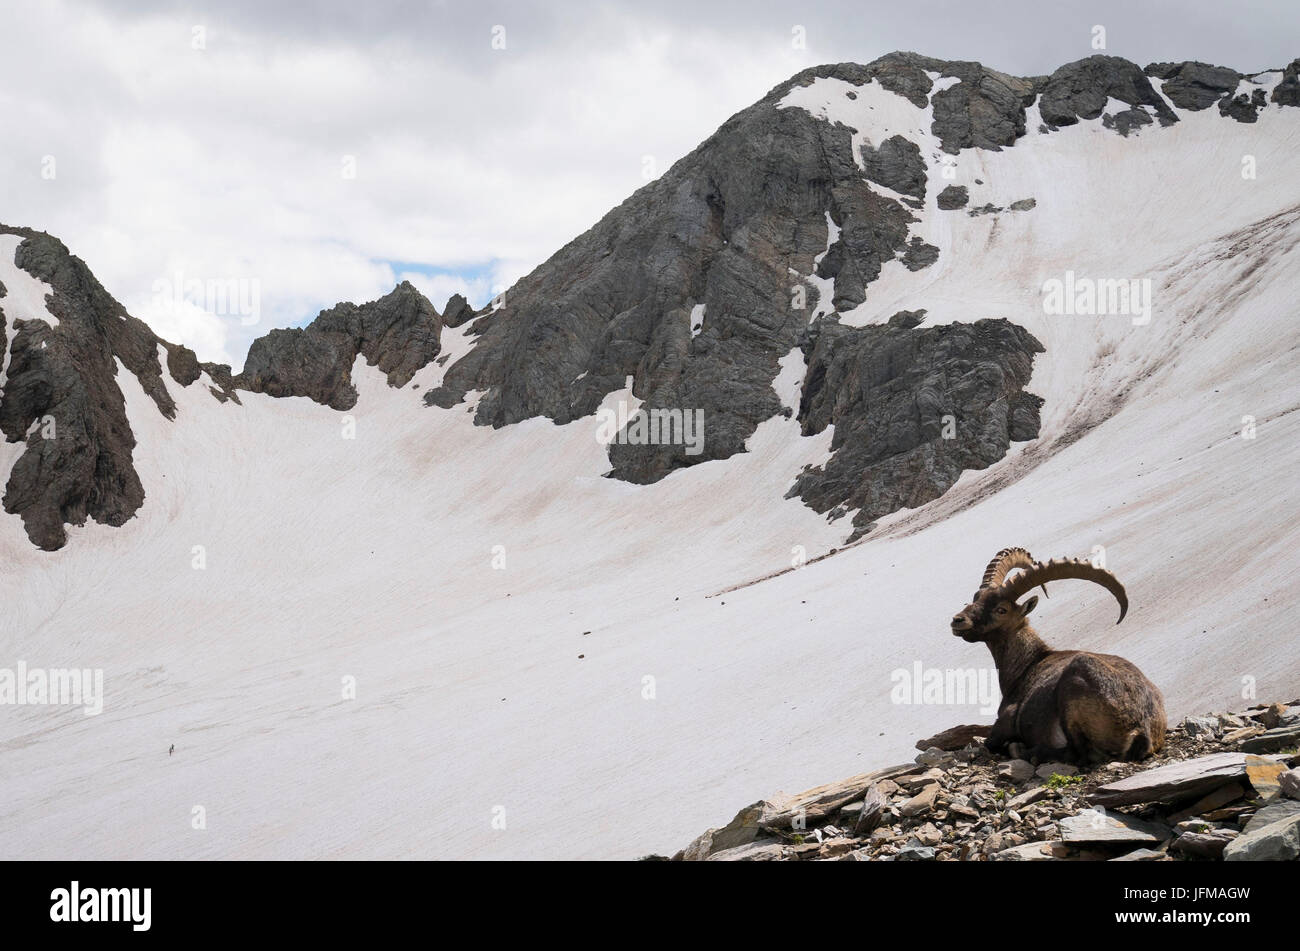 An old male steinbock, Lupo glacier, Orobie, Lombardy, Italy - Stock Image